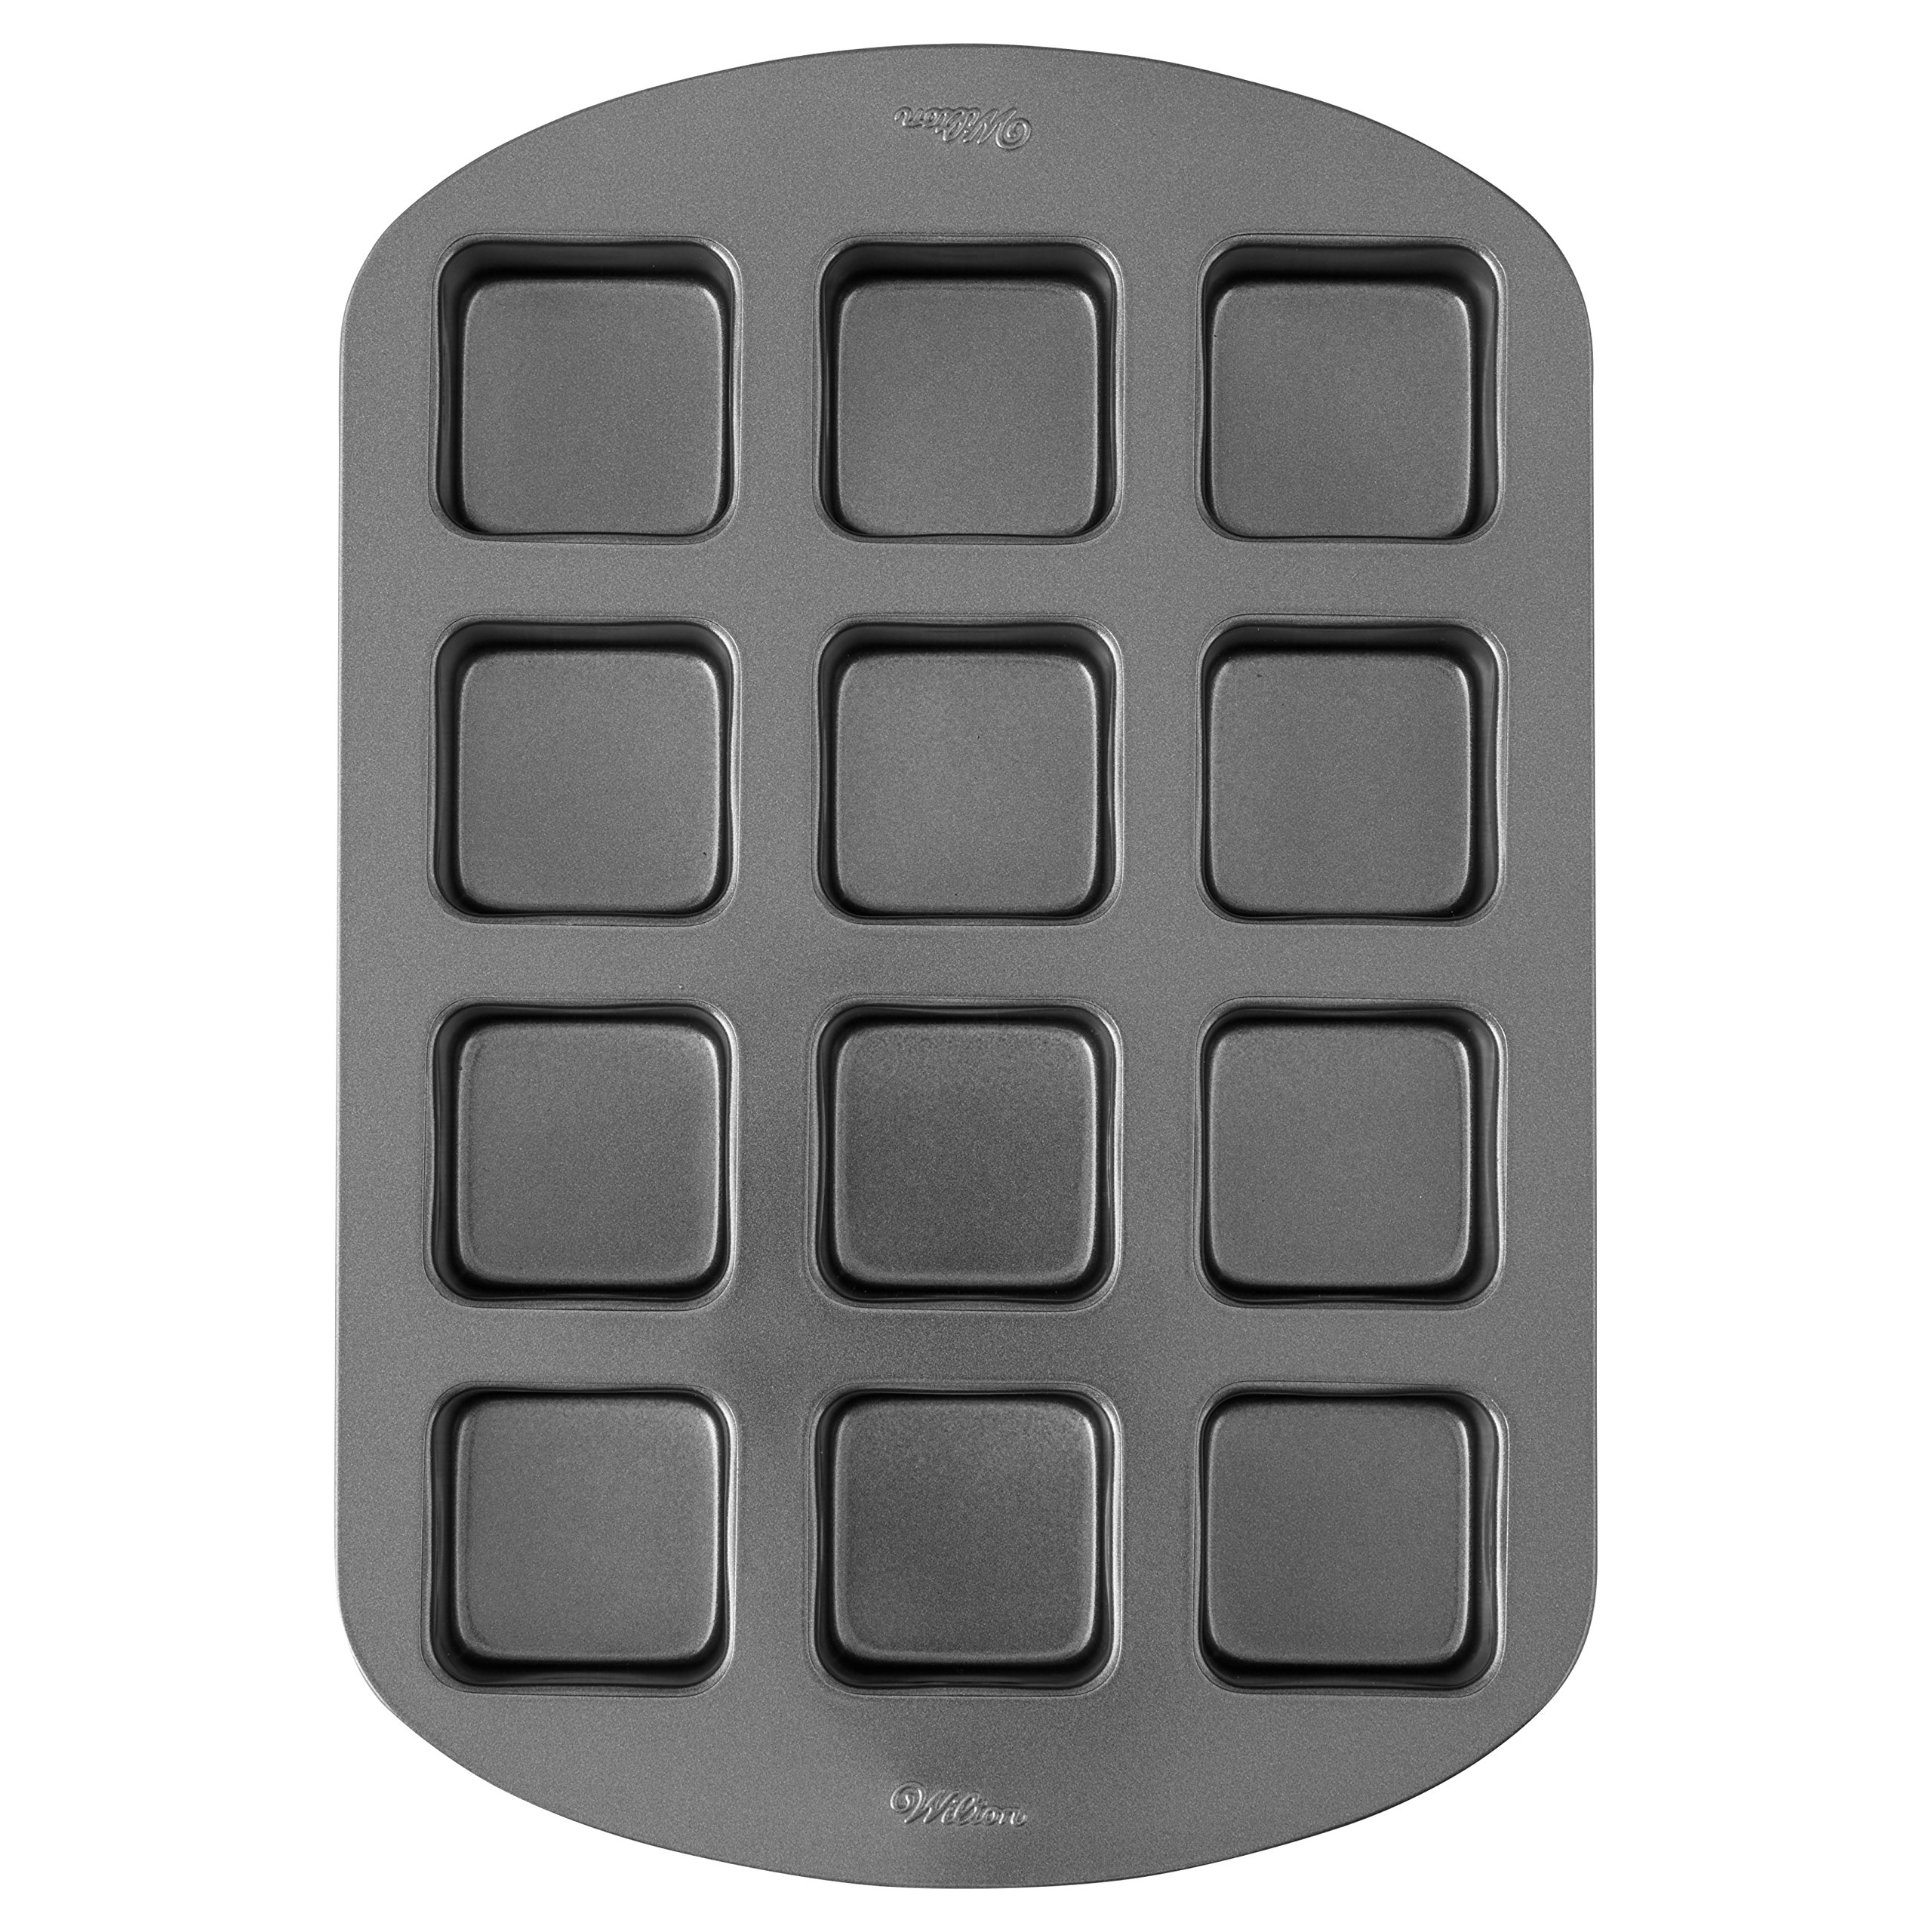 Wilton Perfect Results Premium Non-Stick Bakeware Brownie Bar Baking Pan, 12-Cavity